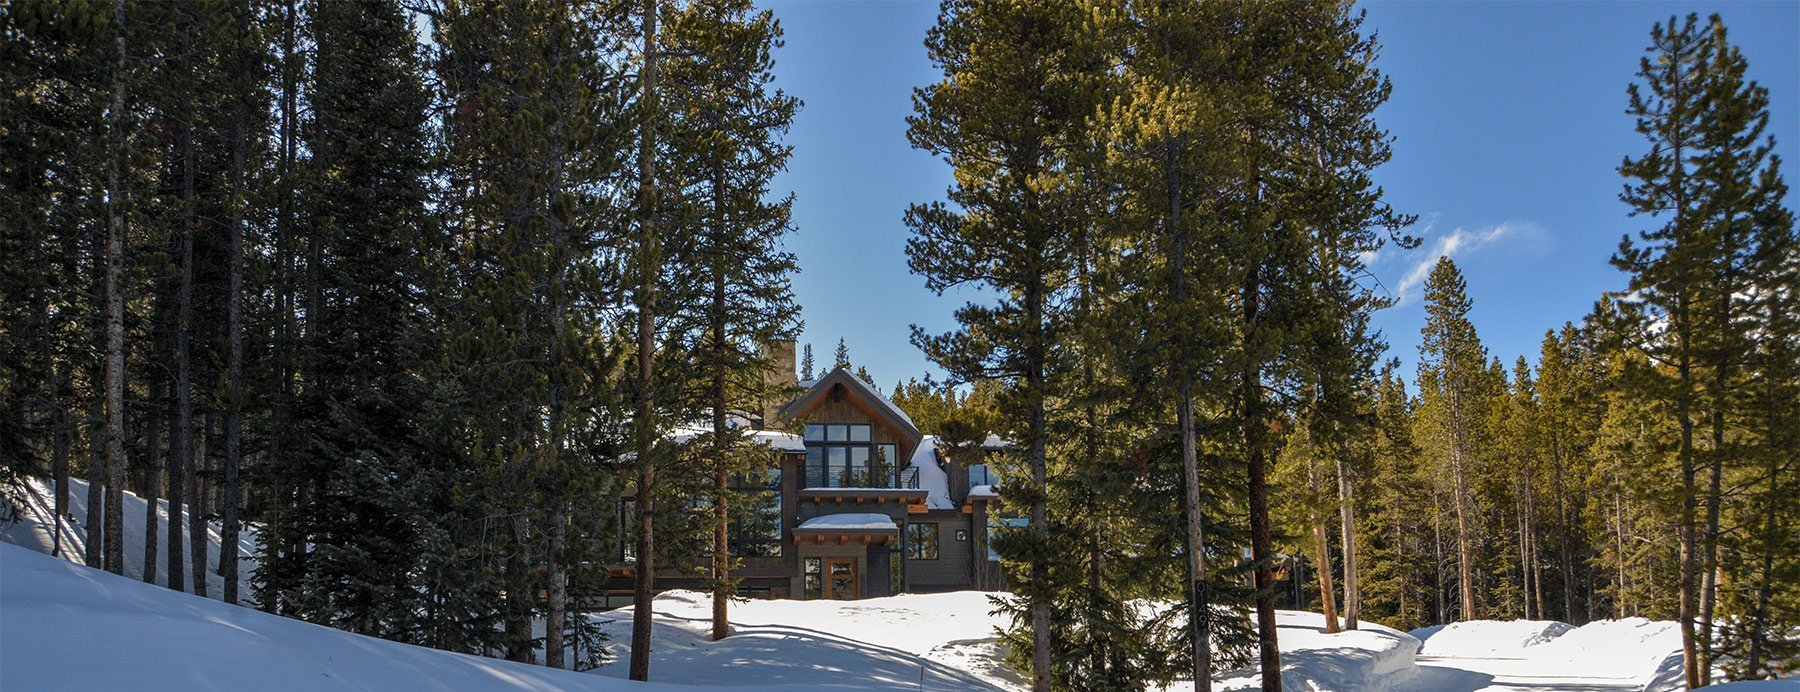 loma verde breckenridge real estate